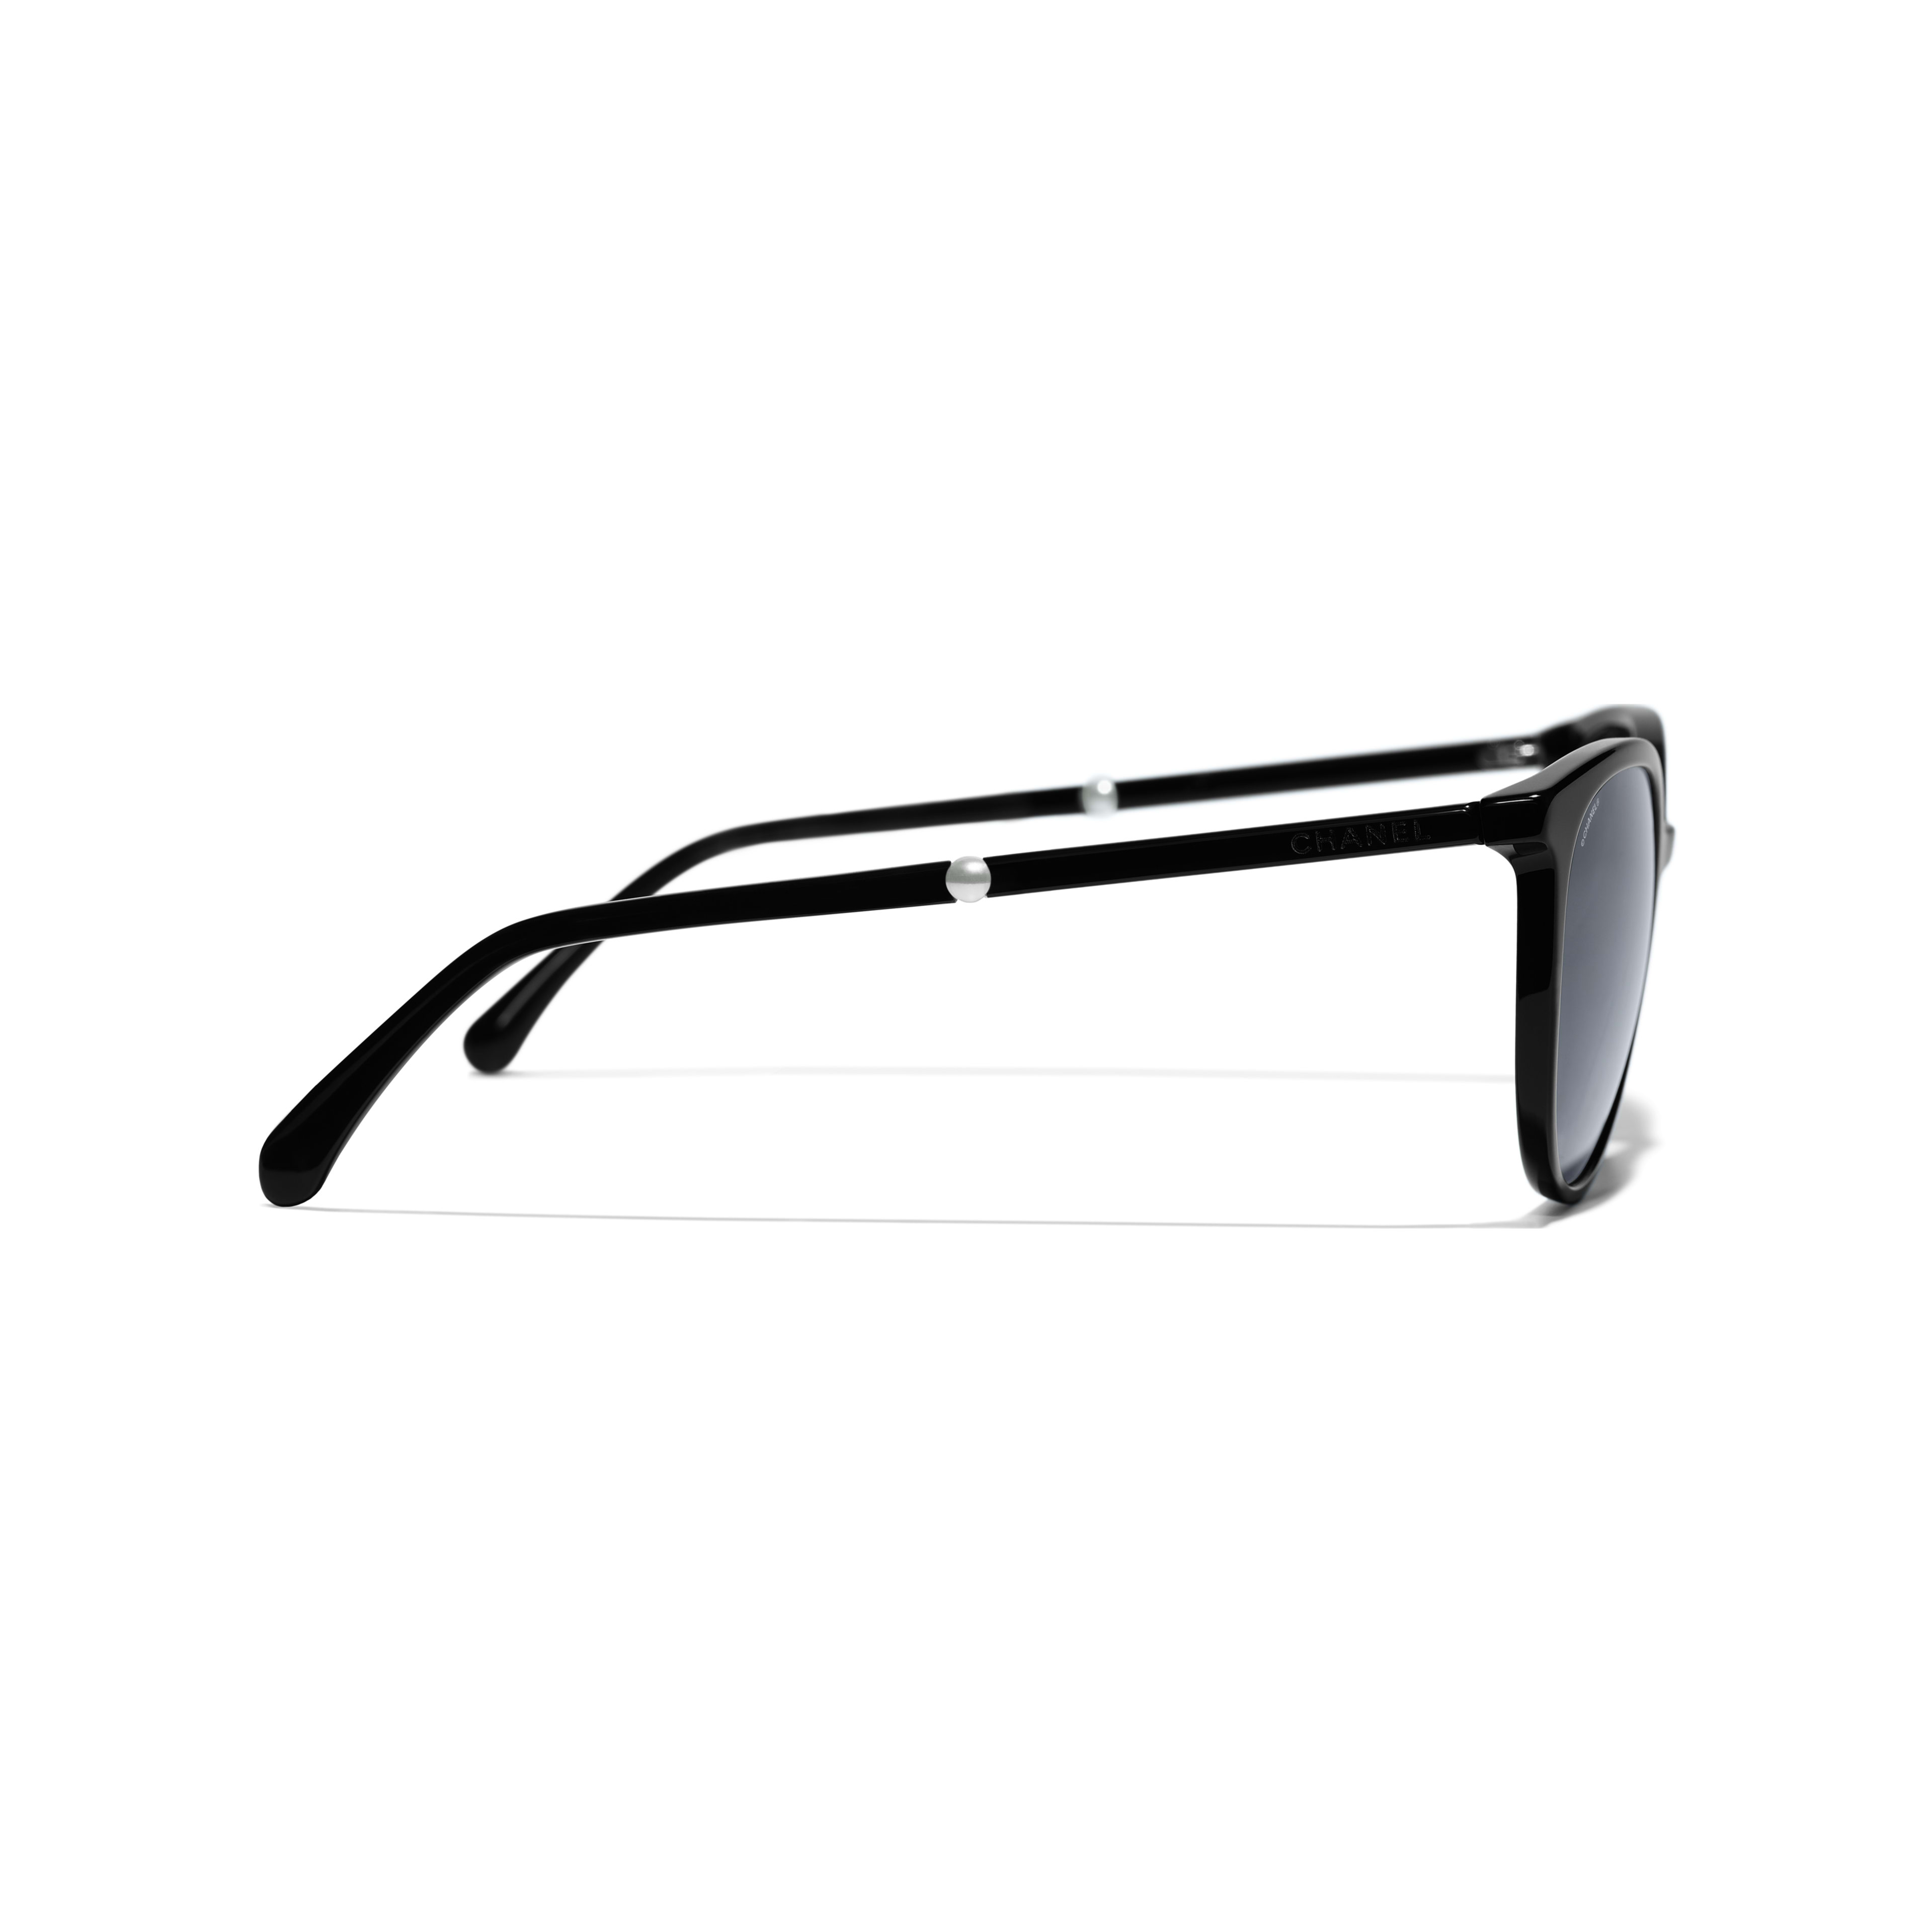 Butterfly Sunglasses - Black - Acetate & Imitation Pearls - Other view - see full sized version